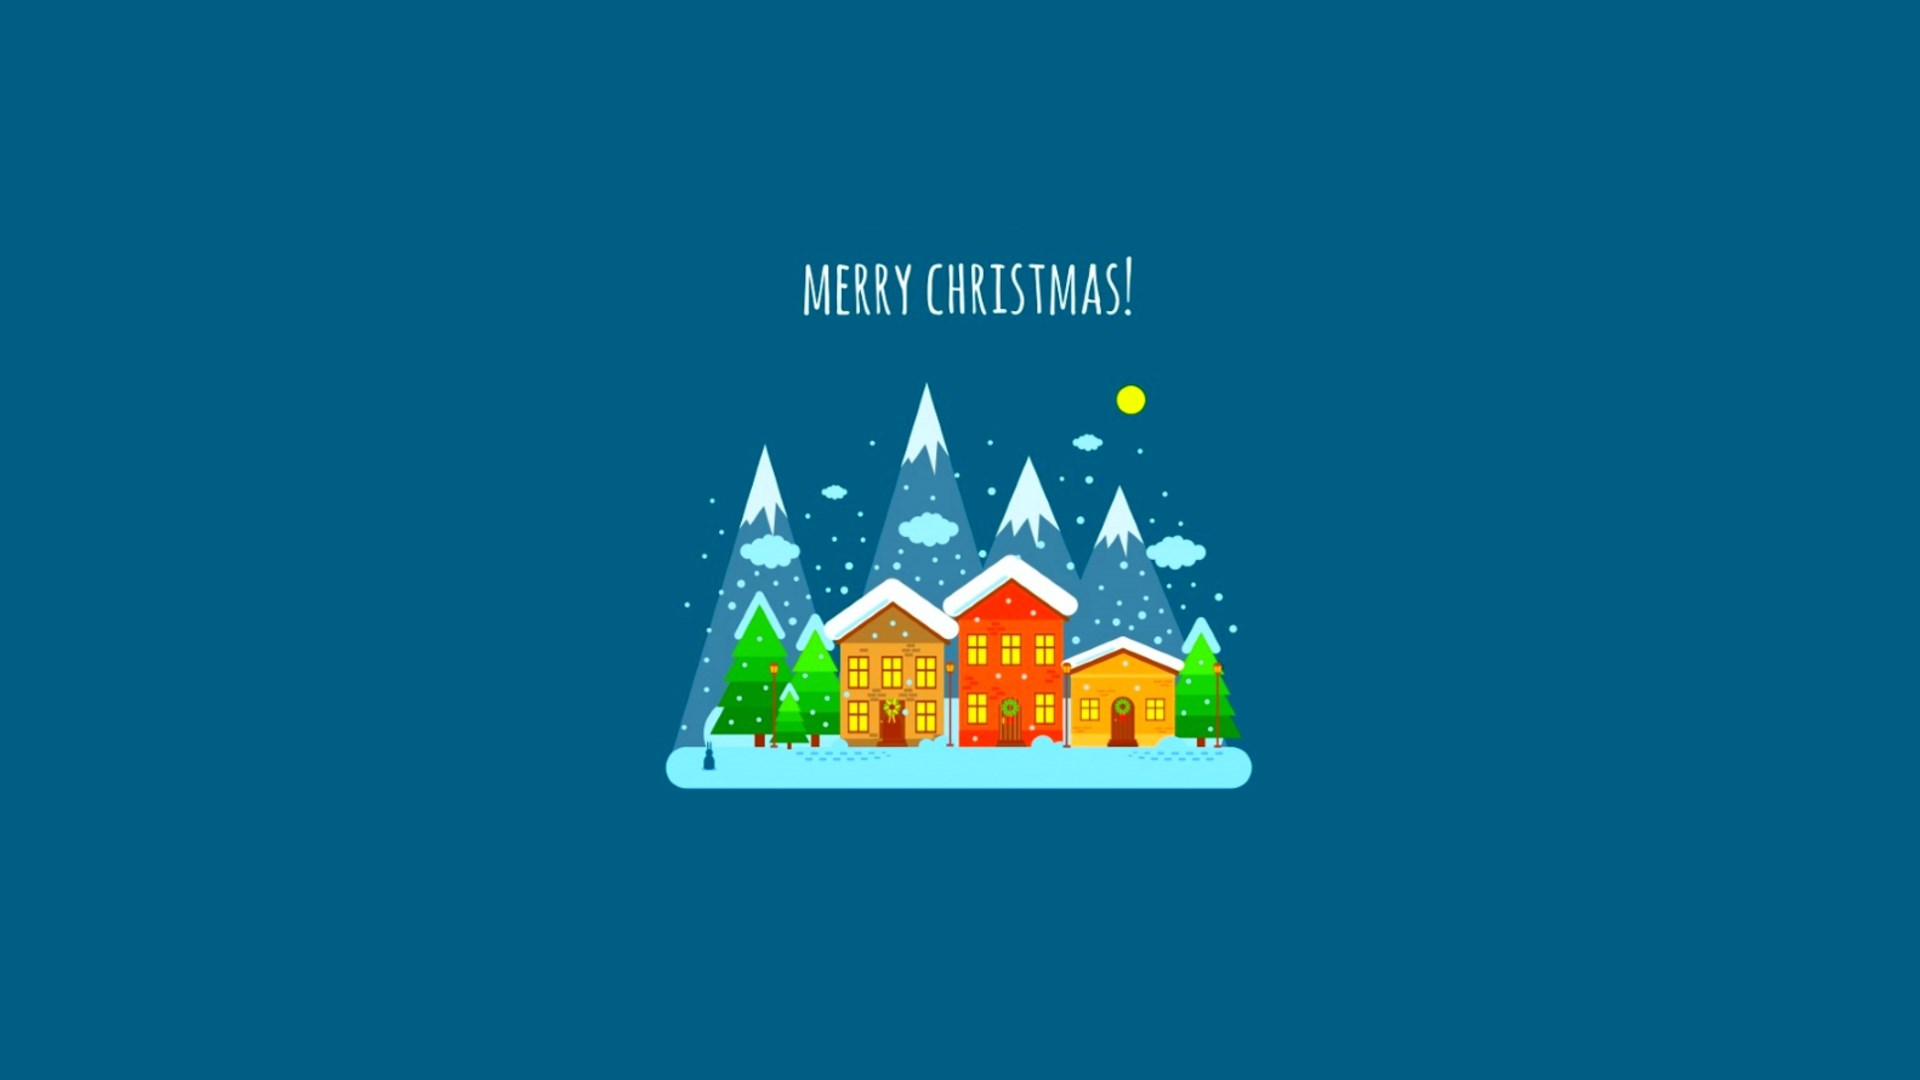 Get Christmas Wallpaper 2019 Microsoft Store